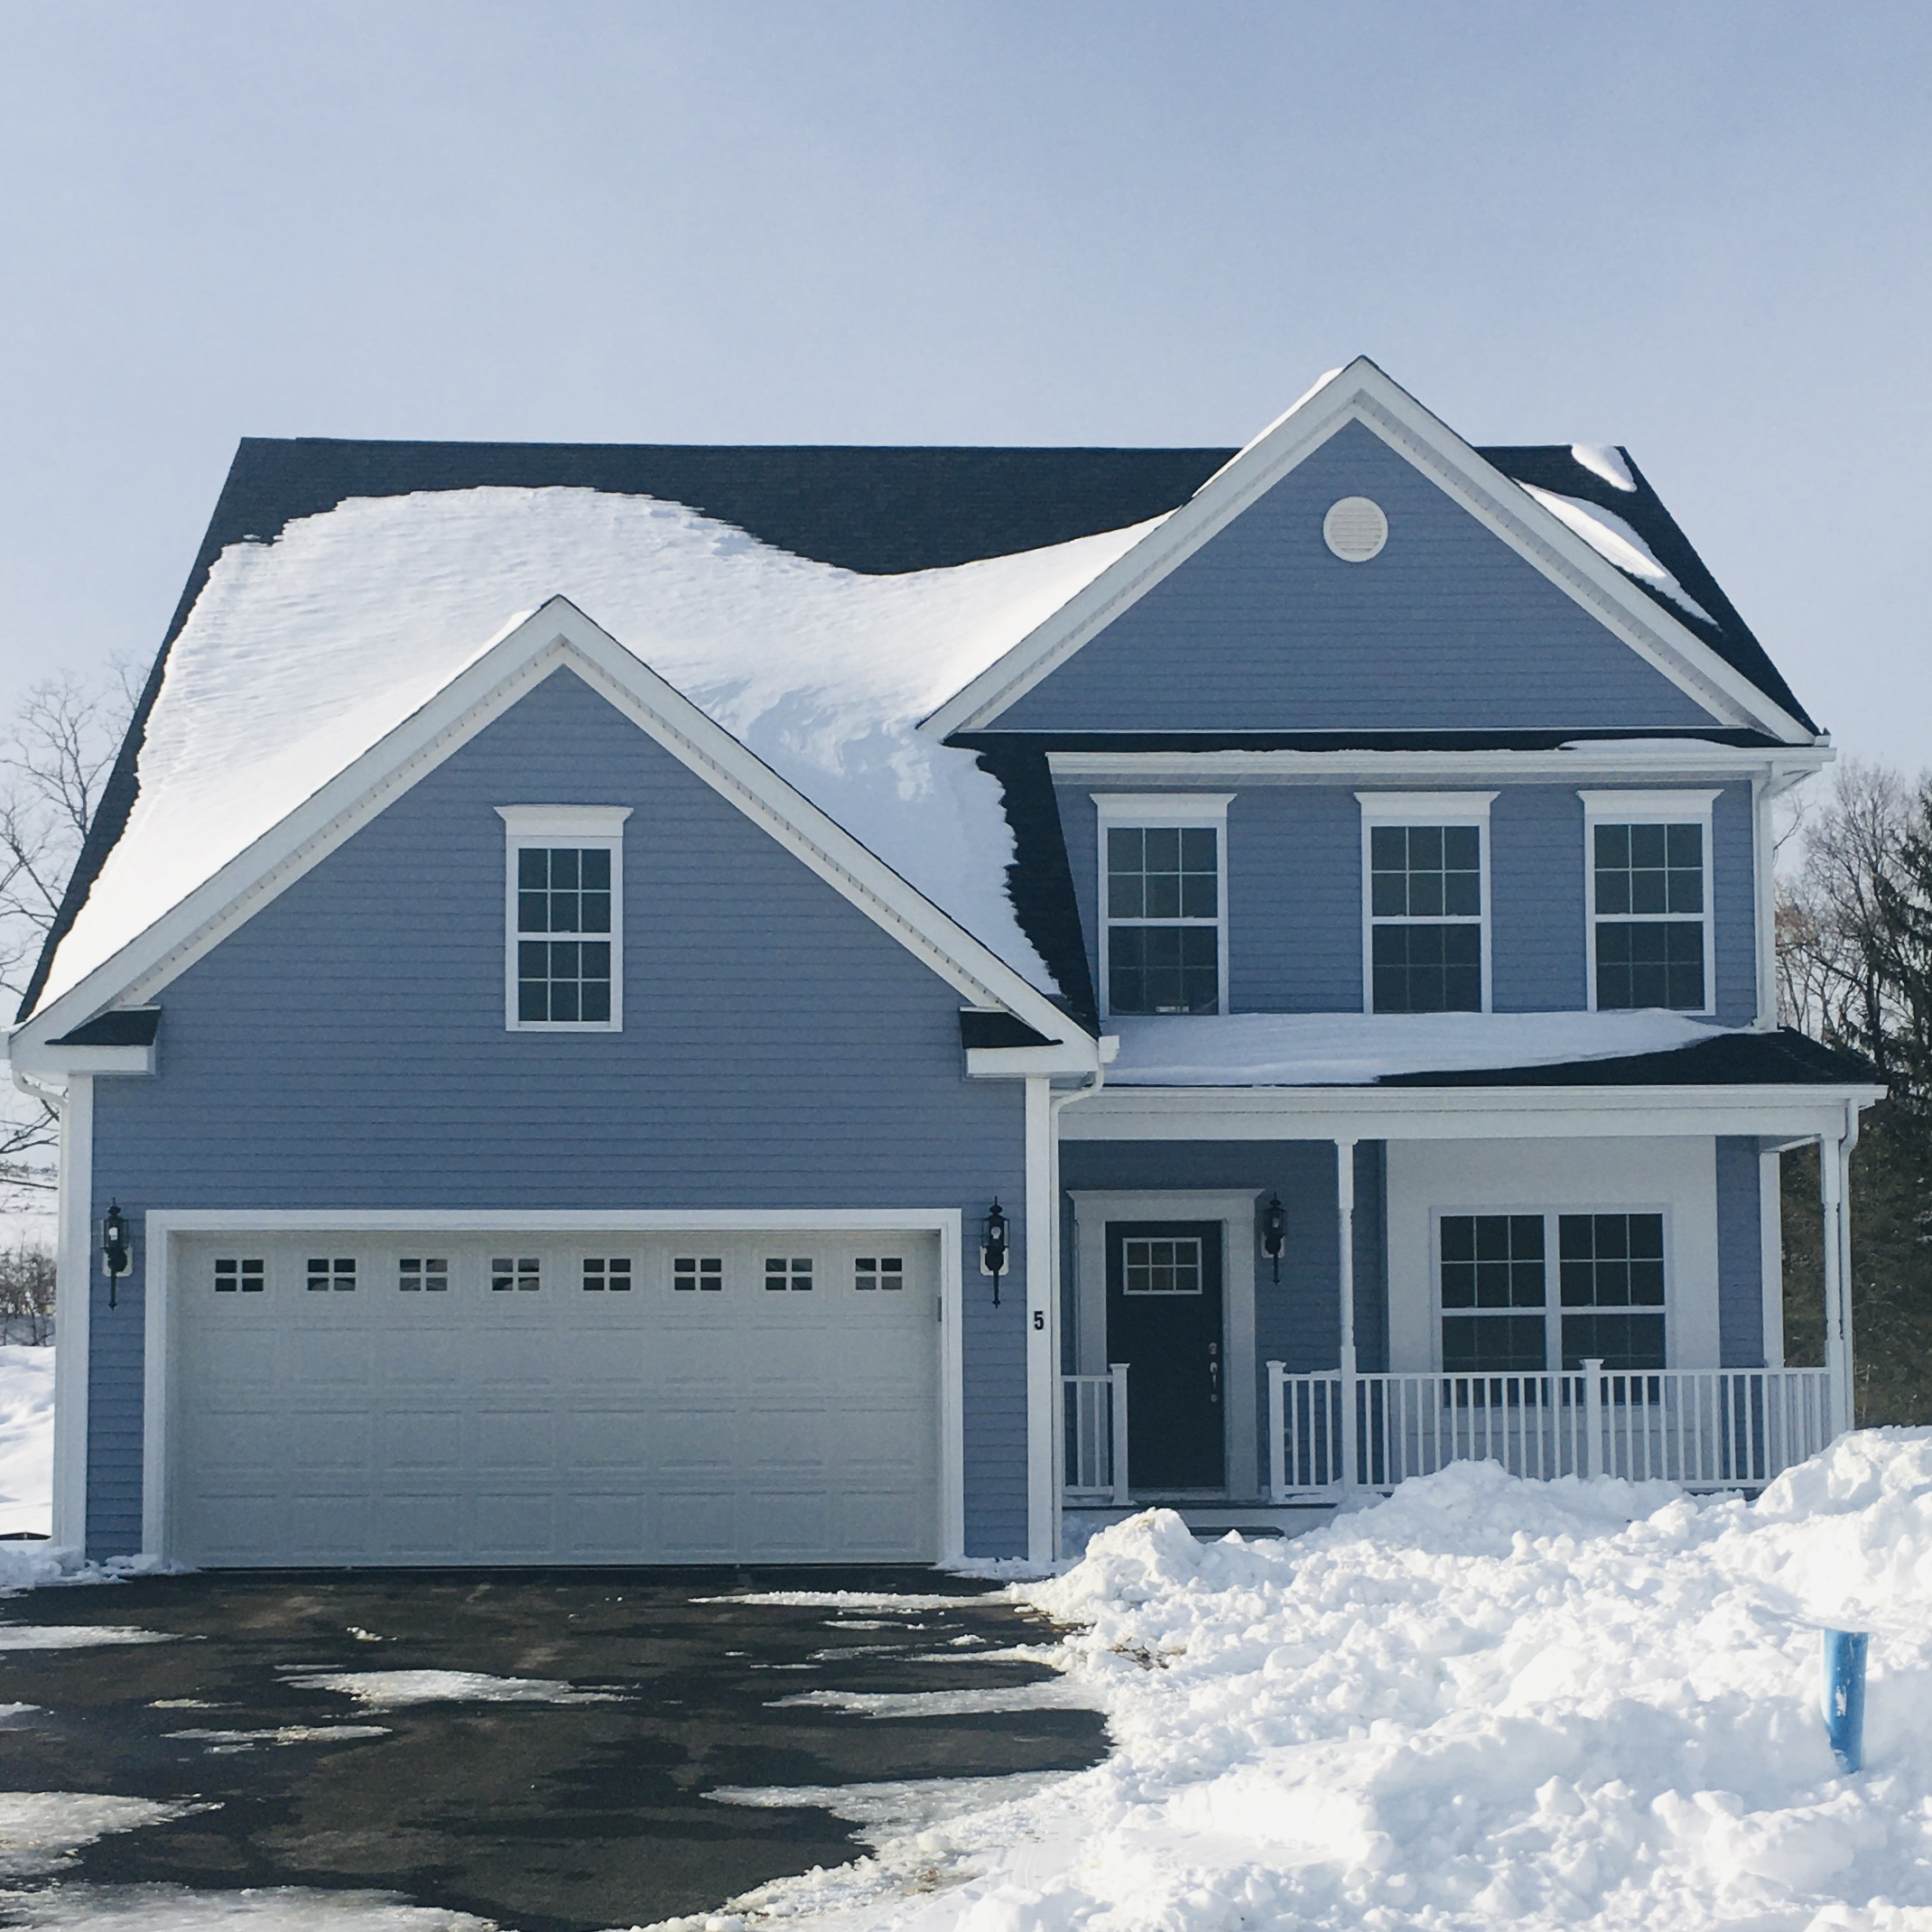 New home The Emerson built at The Glens in Dutchess County, Hudson Valley